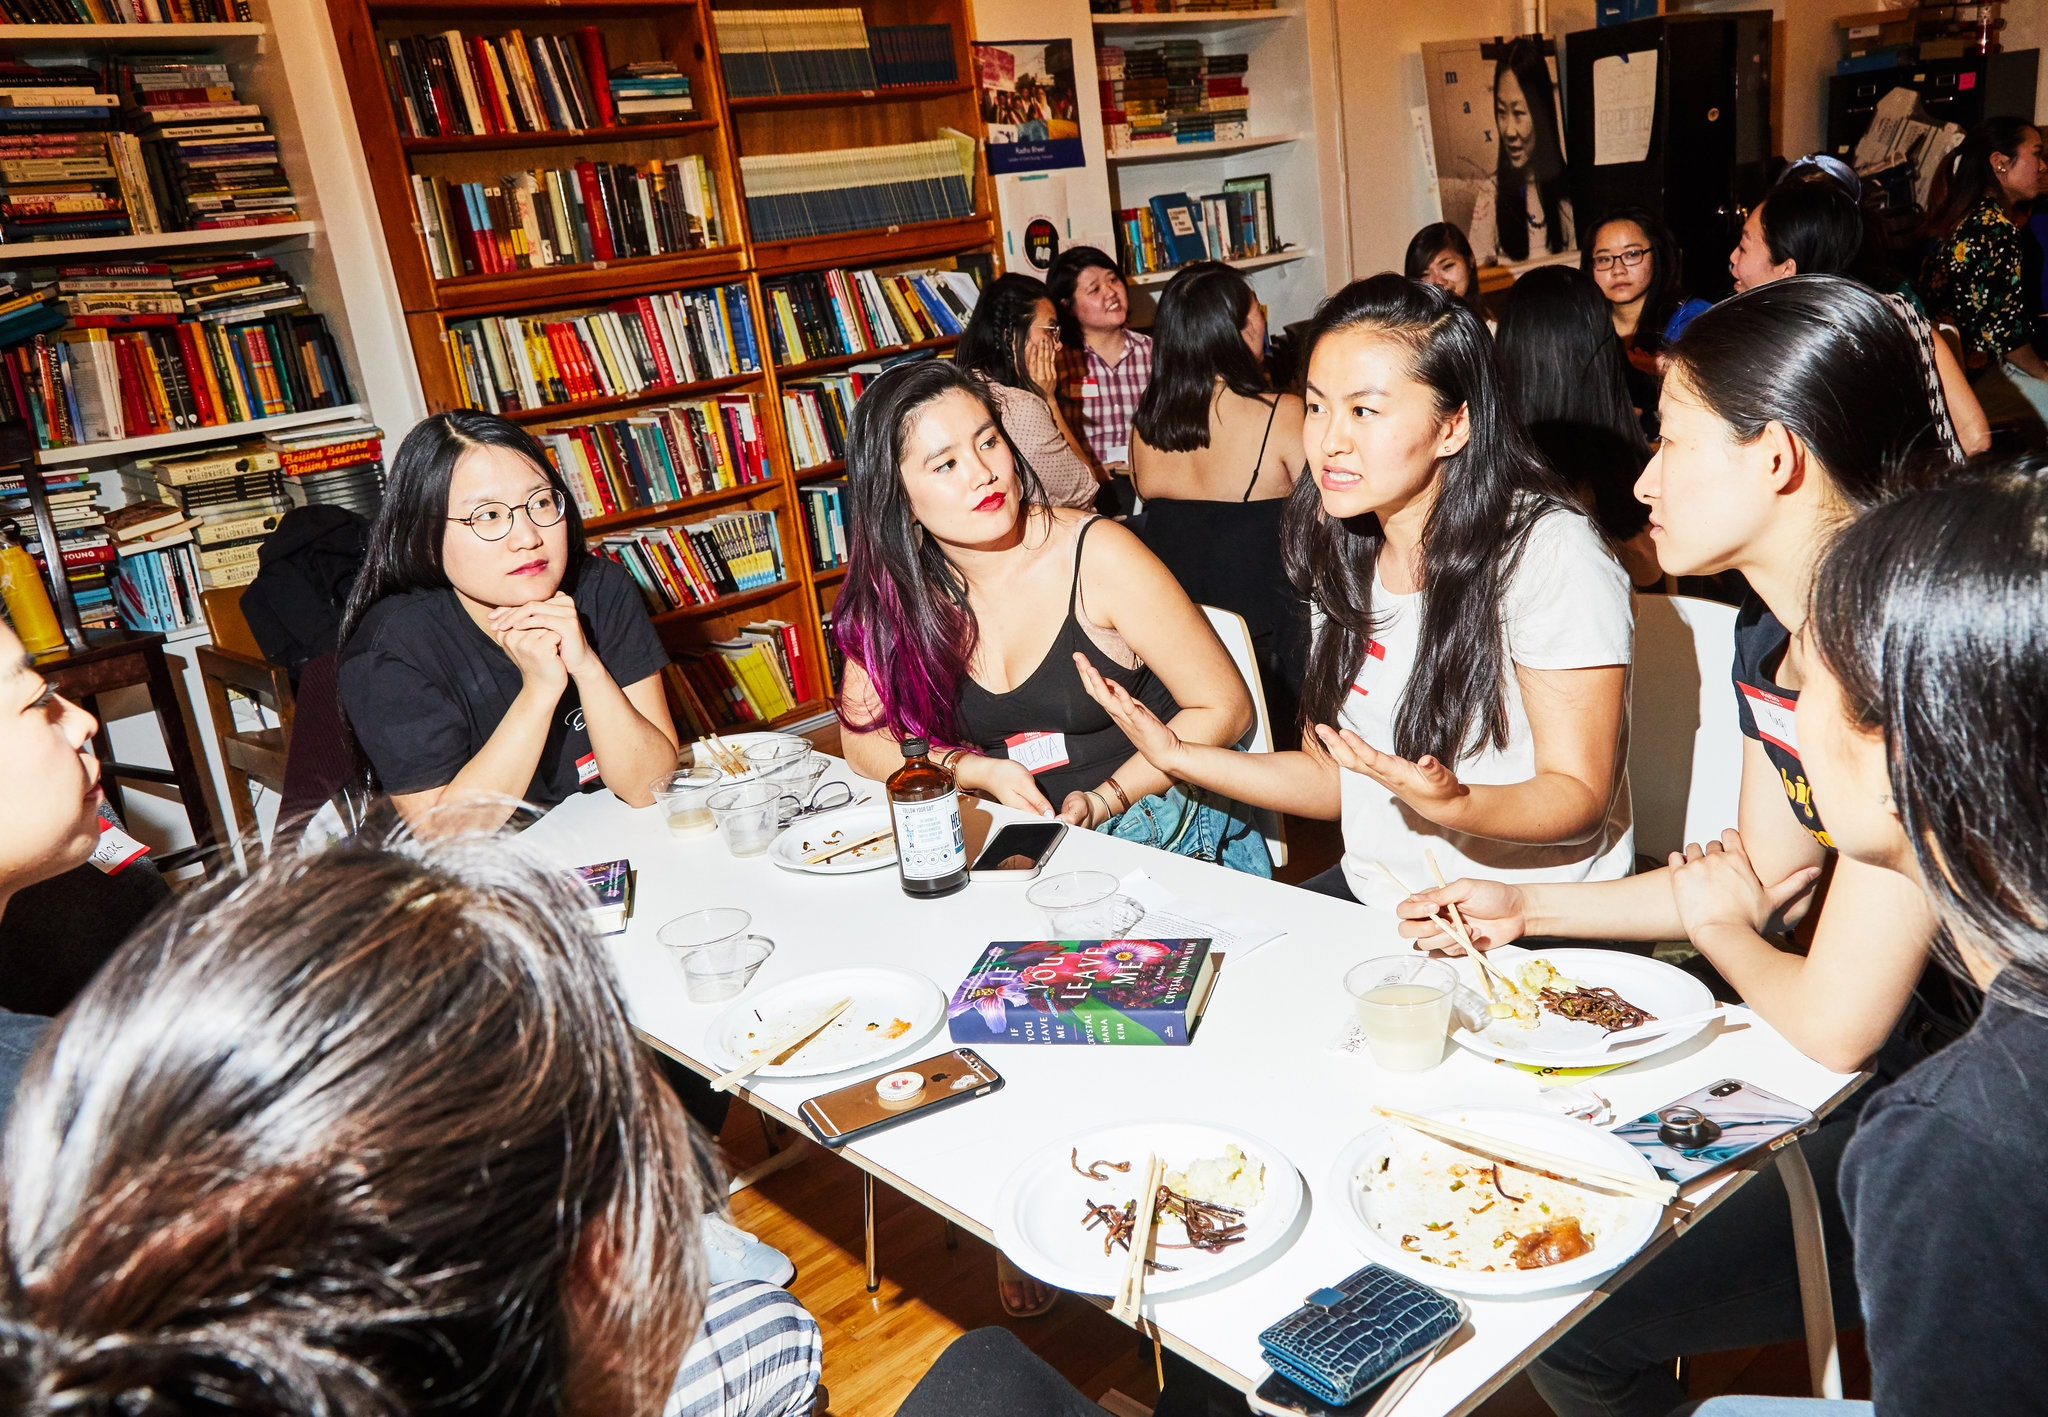 "Partner with the Book Club! - Are you a food, beverage, or venue sponsor who wants to reach a community of Asian millennial and Gen-Z readers and writers? An author or publisher who wants to directly reach an engaged and active audience? Get in touch with us at hello@jointhecosmos.com.Press: New York Times (""Book Clubs Get Especially Clubby"")Past partners: Penguin Random House, Little A Books, Asian American Writers' Workshop, Boba Guys, and YooeatingPast authors: Crystal Hana Kim (If You Leave Me), Lisa Ko (The Leavers), Nicole Chung (All You Can Ever Know) and more!"